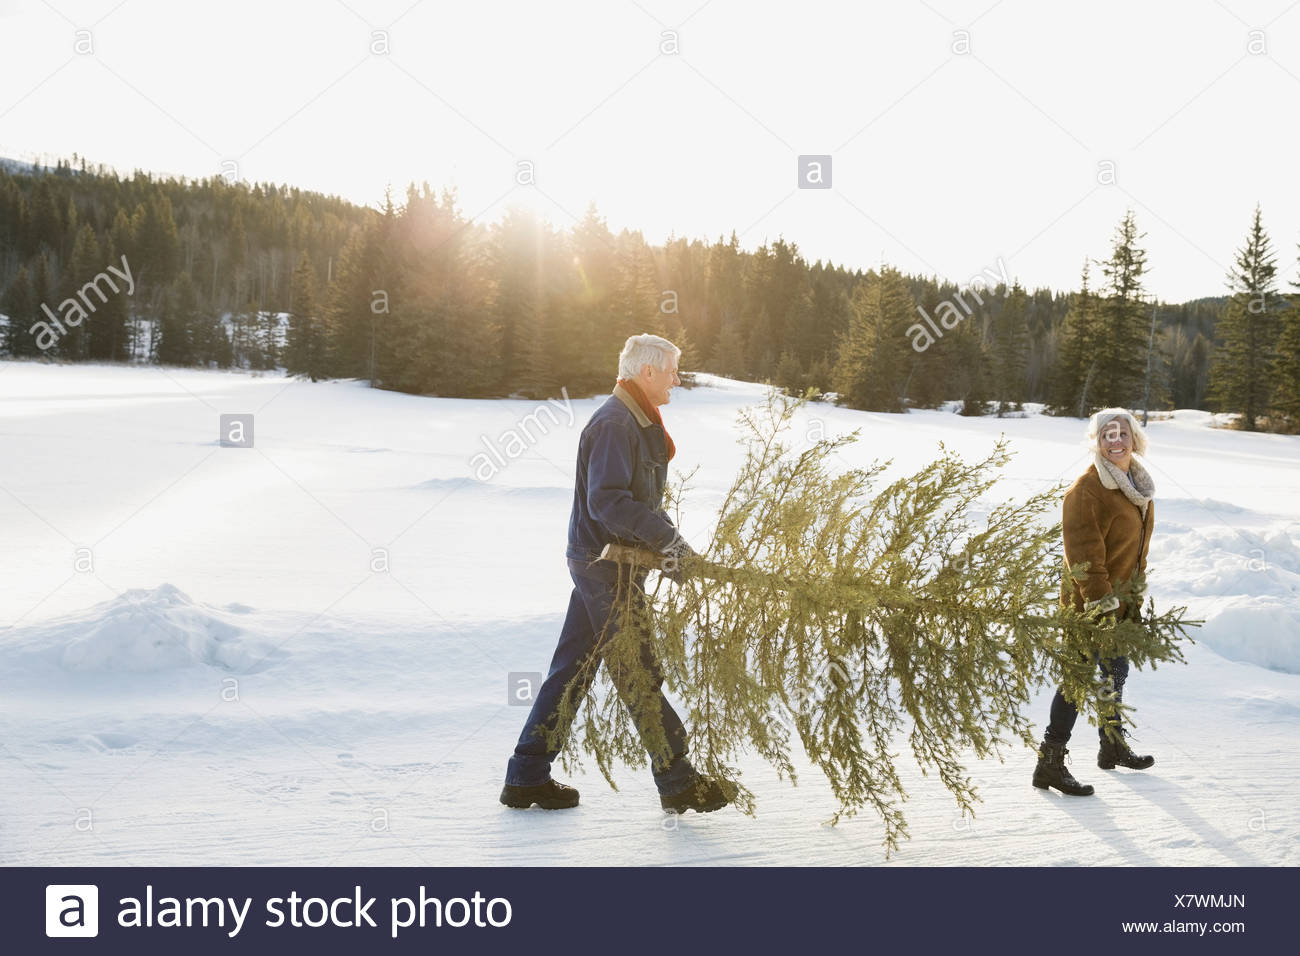 Couple carrying Christmas tree in snow - Stock Image